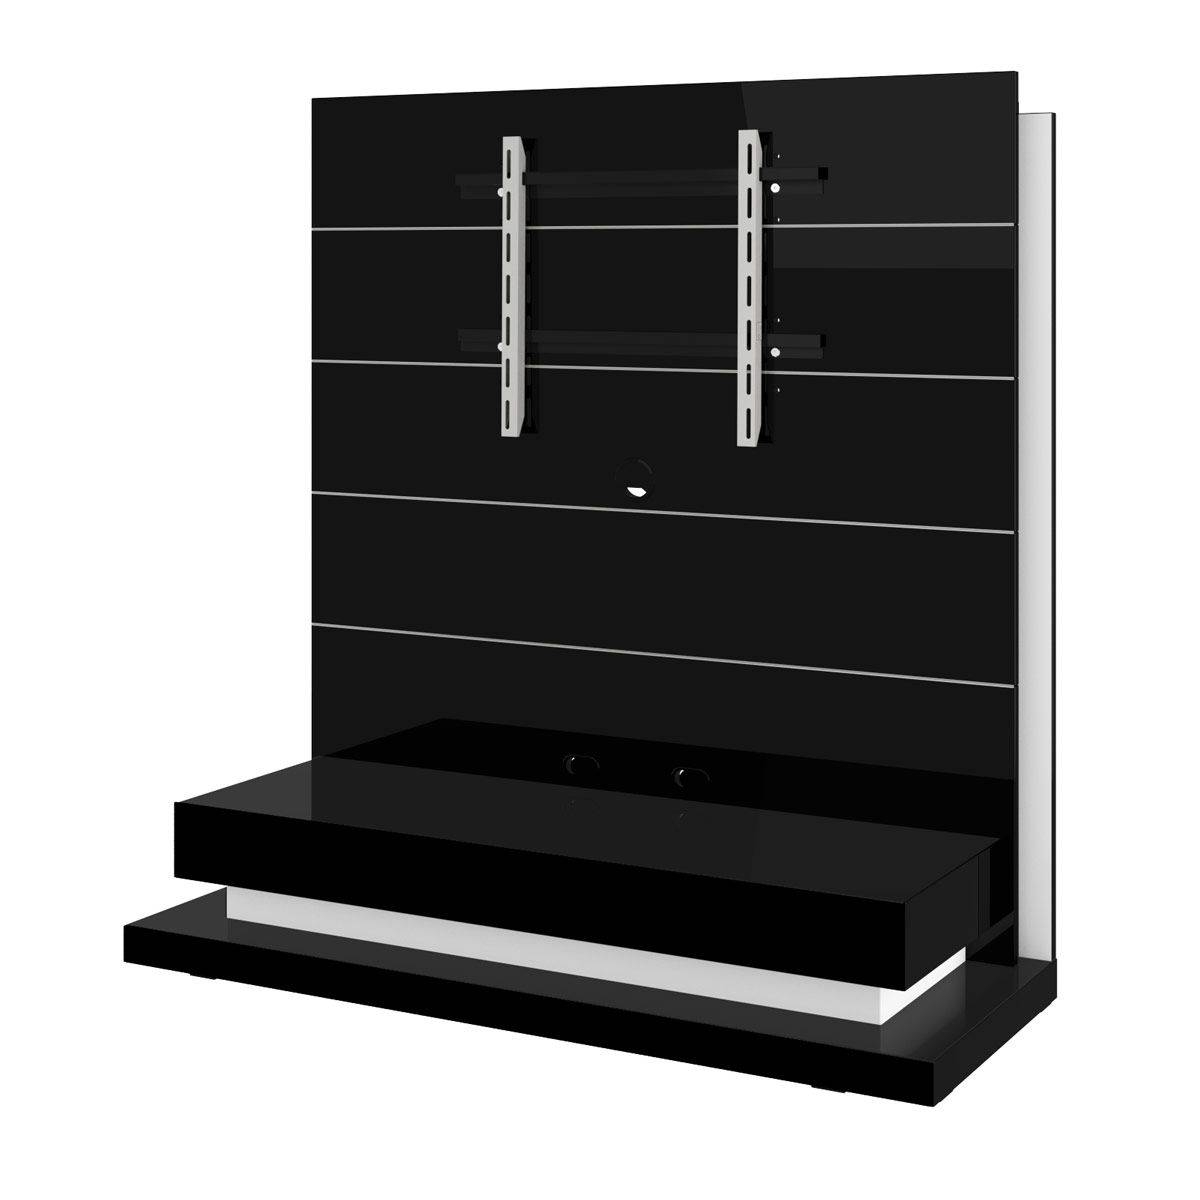 Standing Panorama Lux Black Tv Stand Pertaining To Panorama Tv Stands (View 10 of 16)